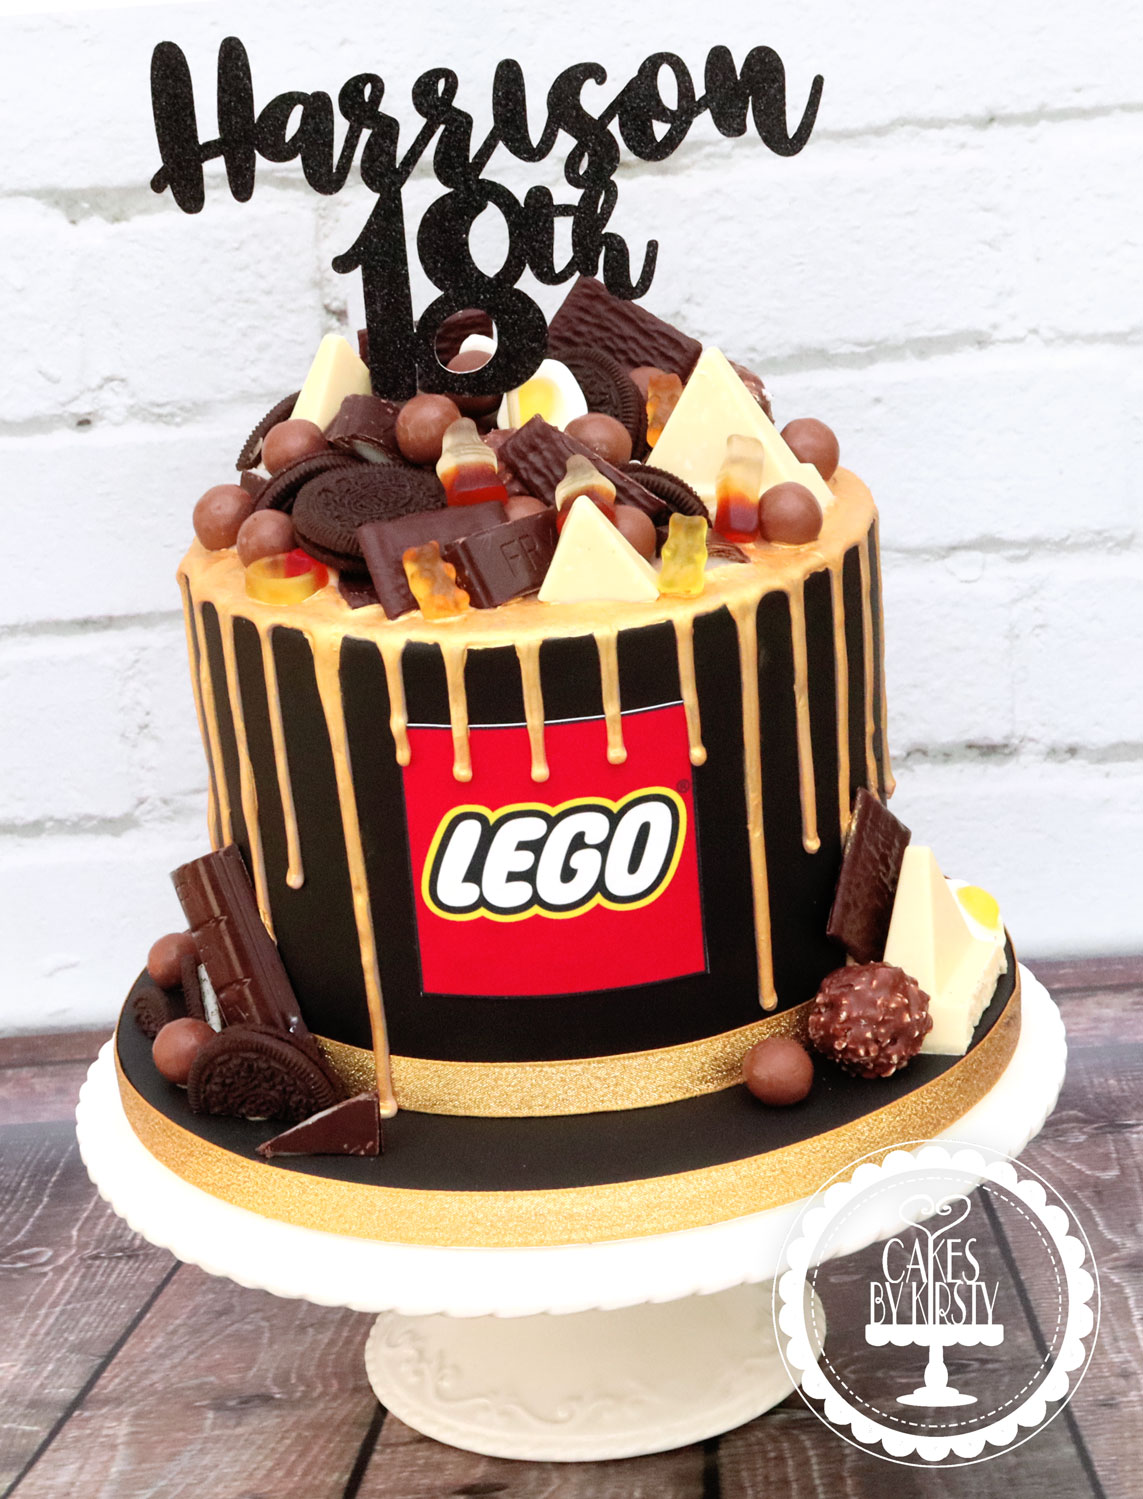 20200111 - Black & Gold 18th Drip Cake